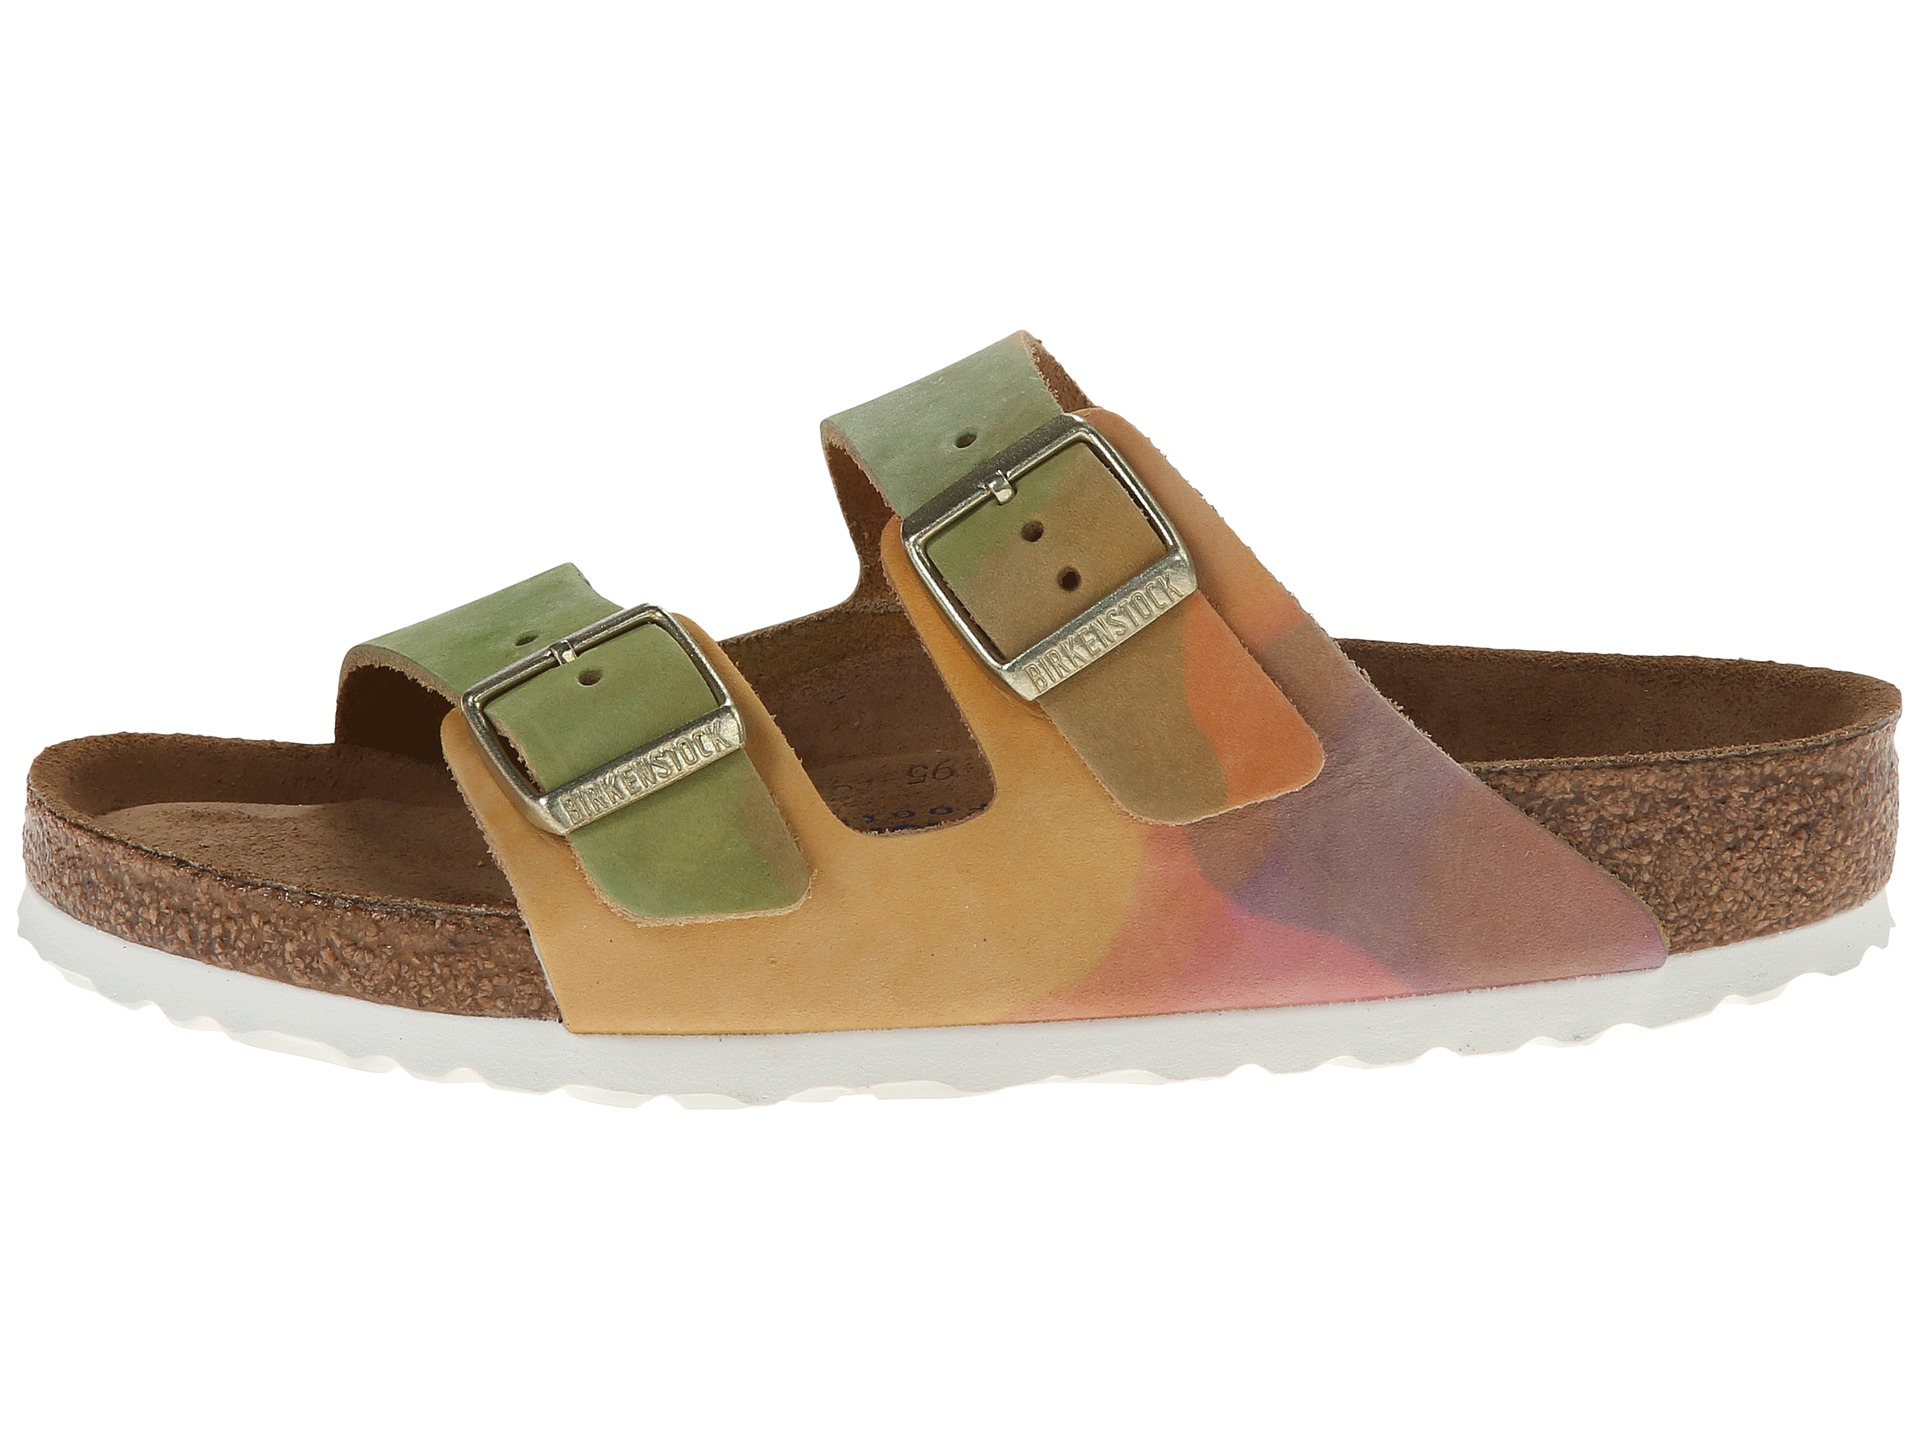 3385744dda33 Lyst - Birkenstock Arizona Soft Footbed - Leather (unisex) in Green